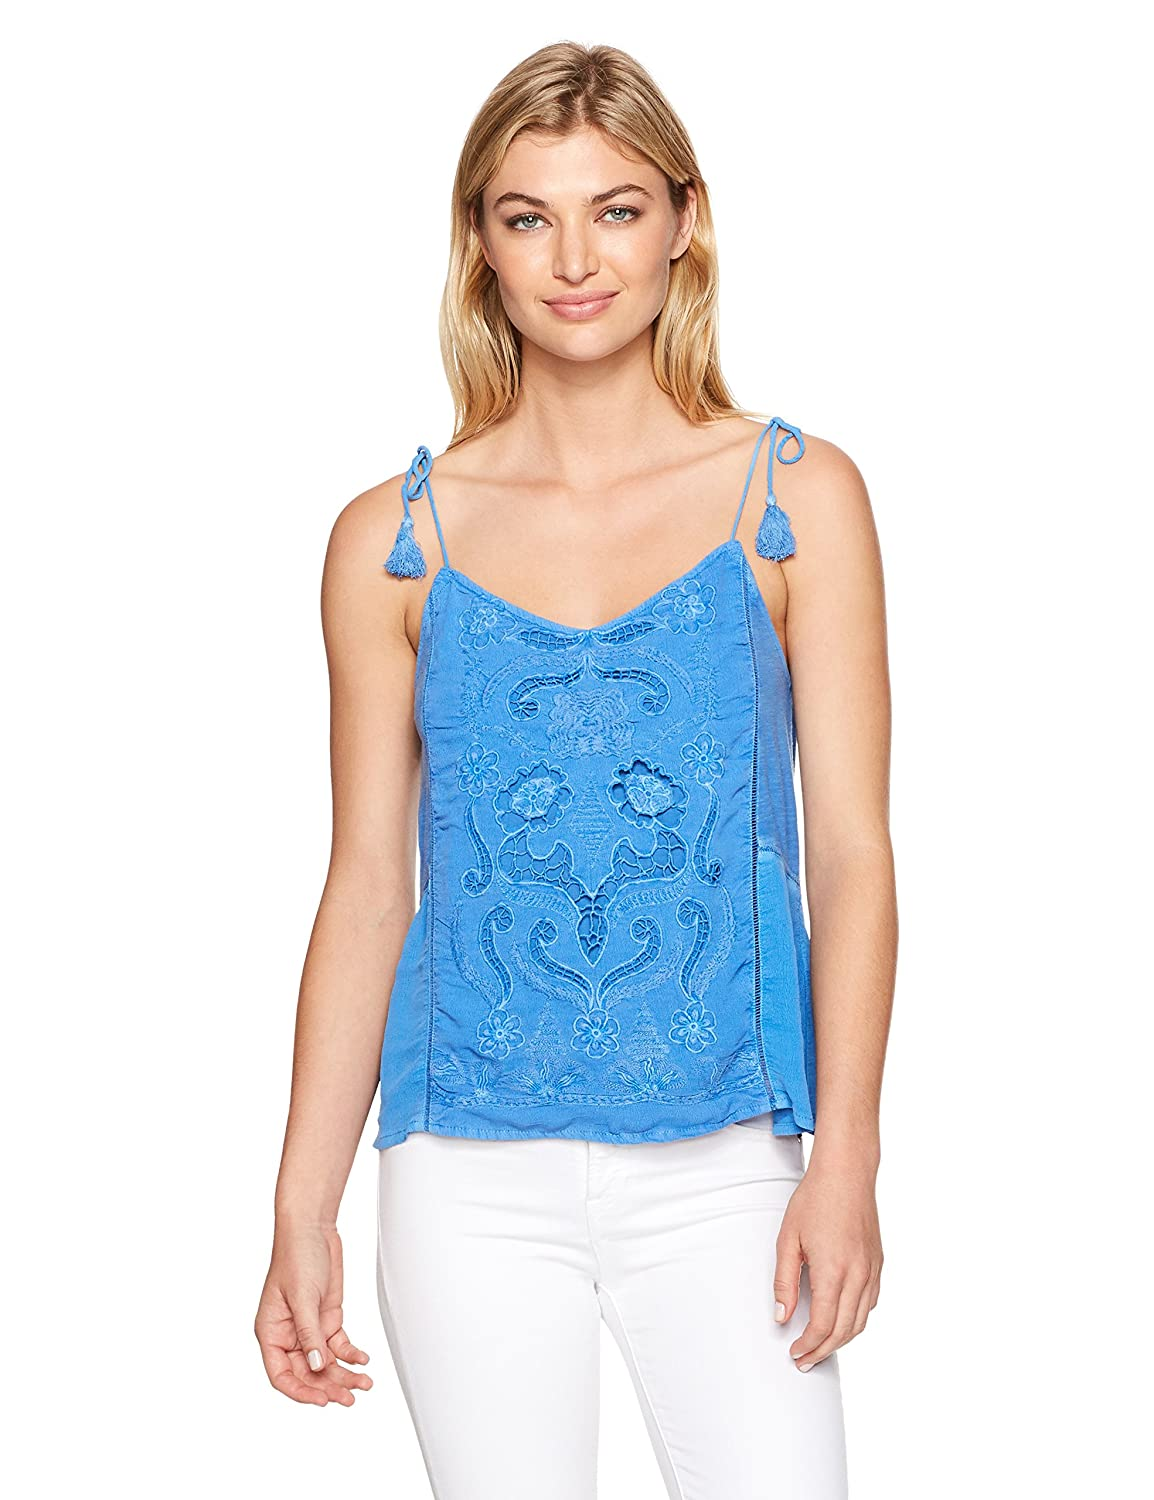 Corn Flower bluee Lucky Brand Womens Washed Embriodered Top TShirt